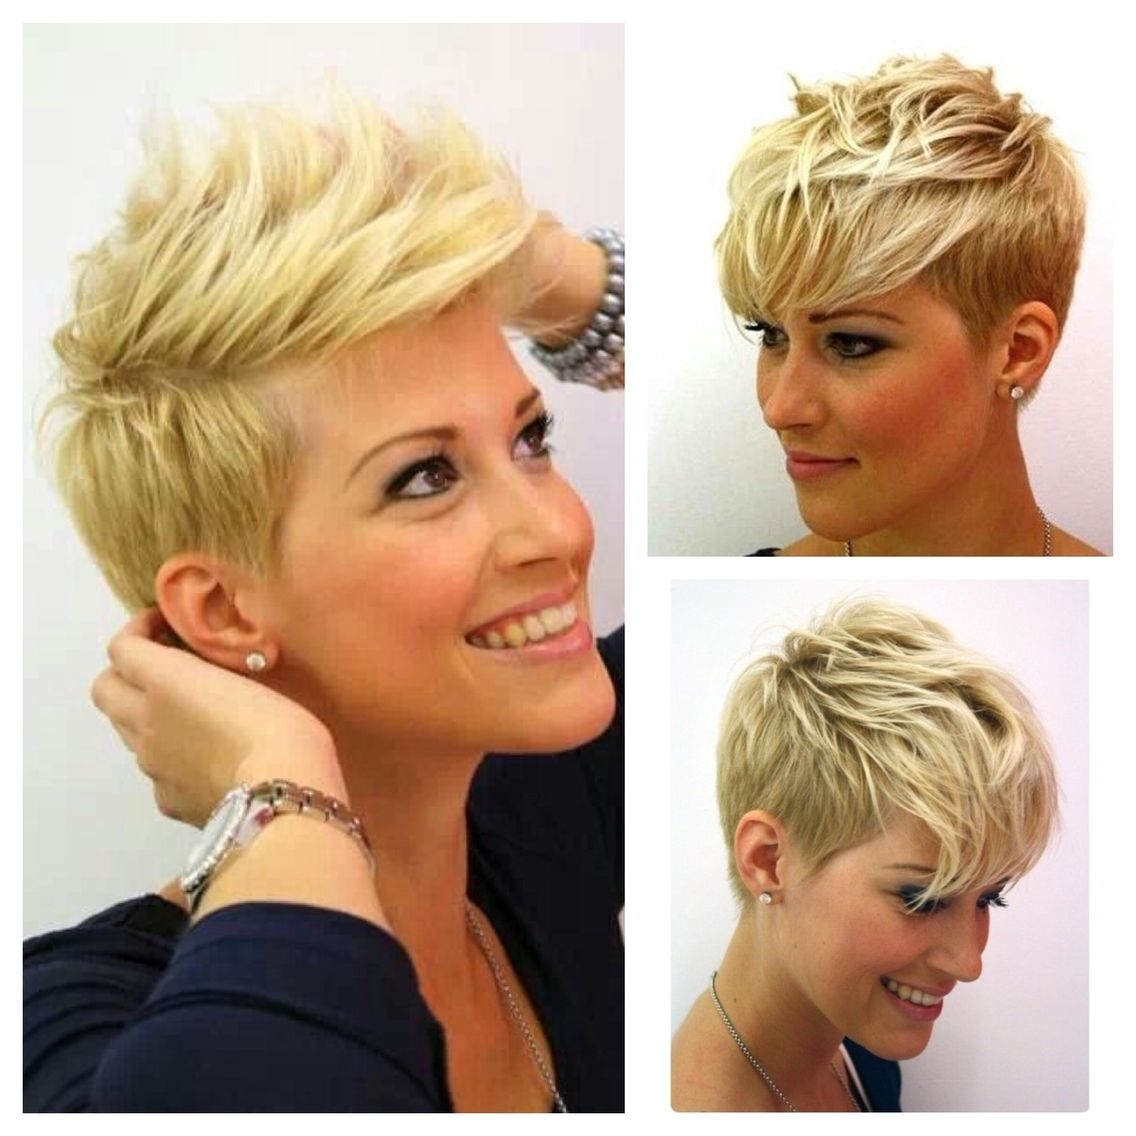 Super Cute Short Layered Pixie Cut For Fine Hair   Fun Things For Inside Most Popular Long Pixie Hairstyles For Thin Hair (View 14 of 15)